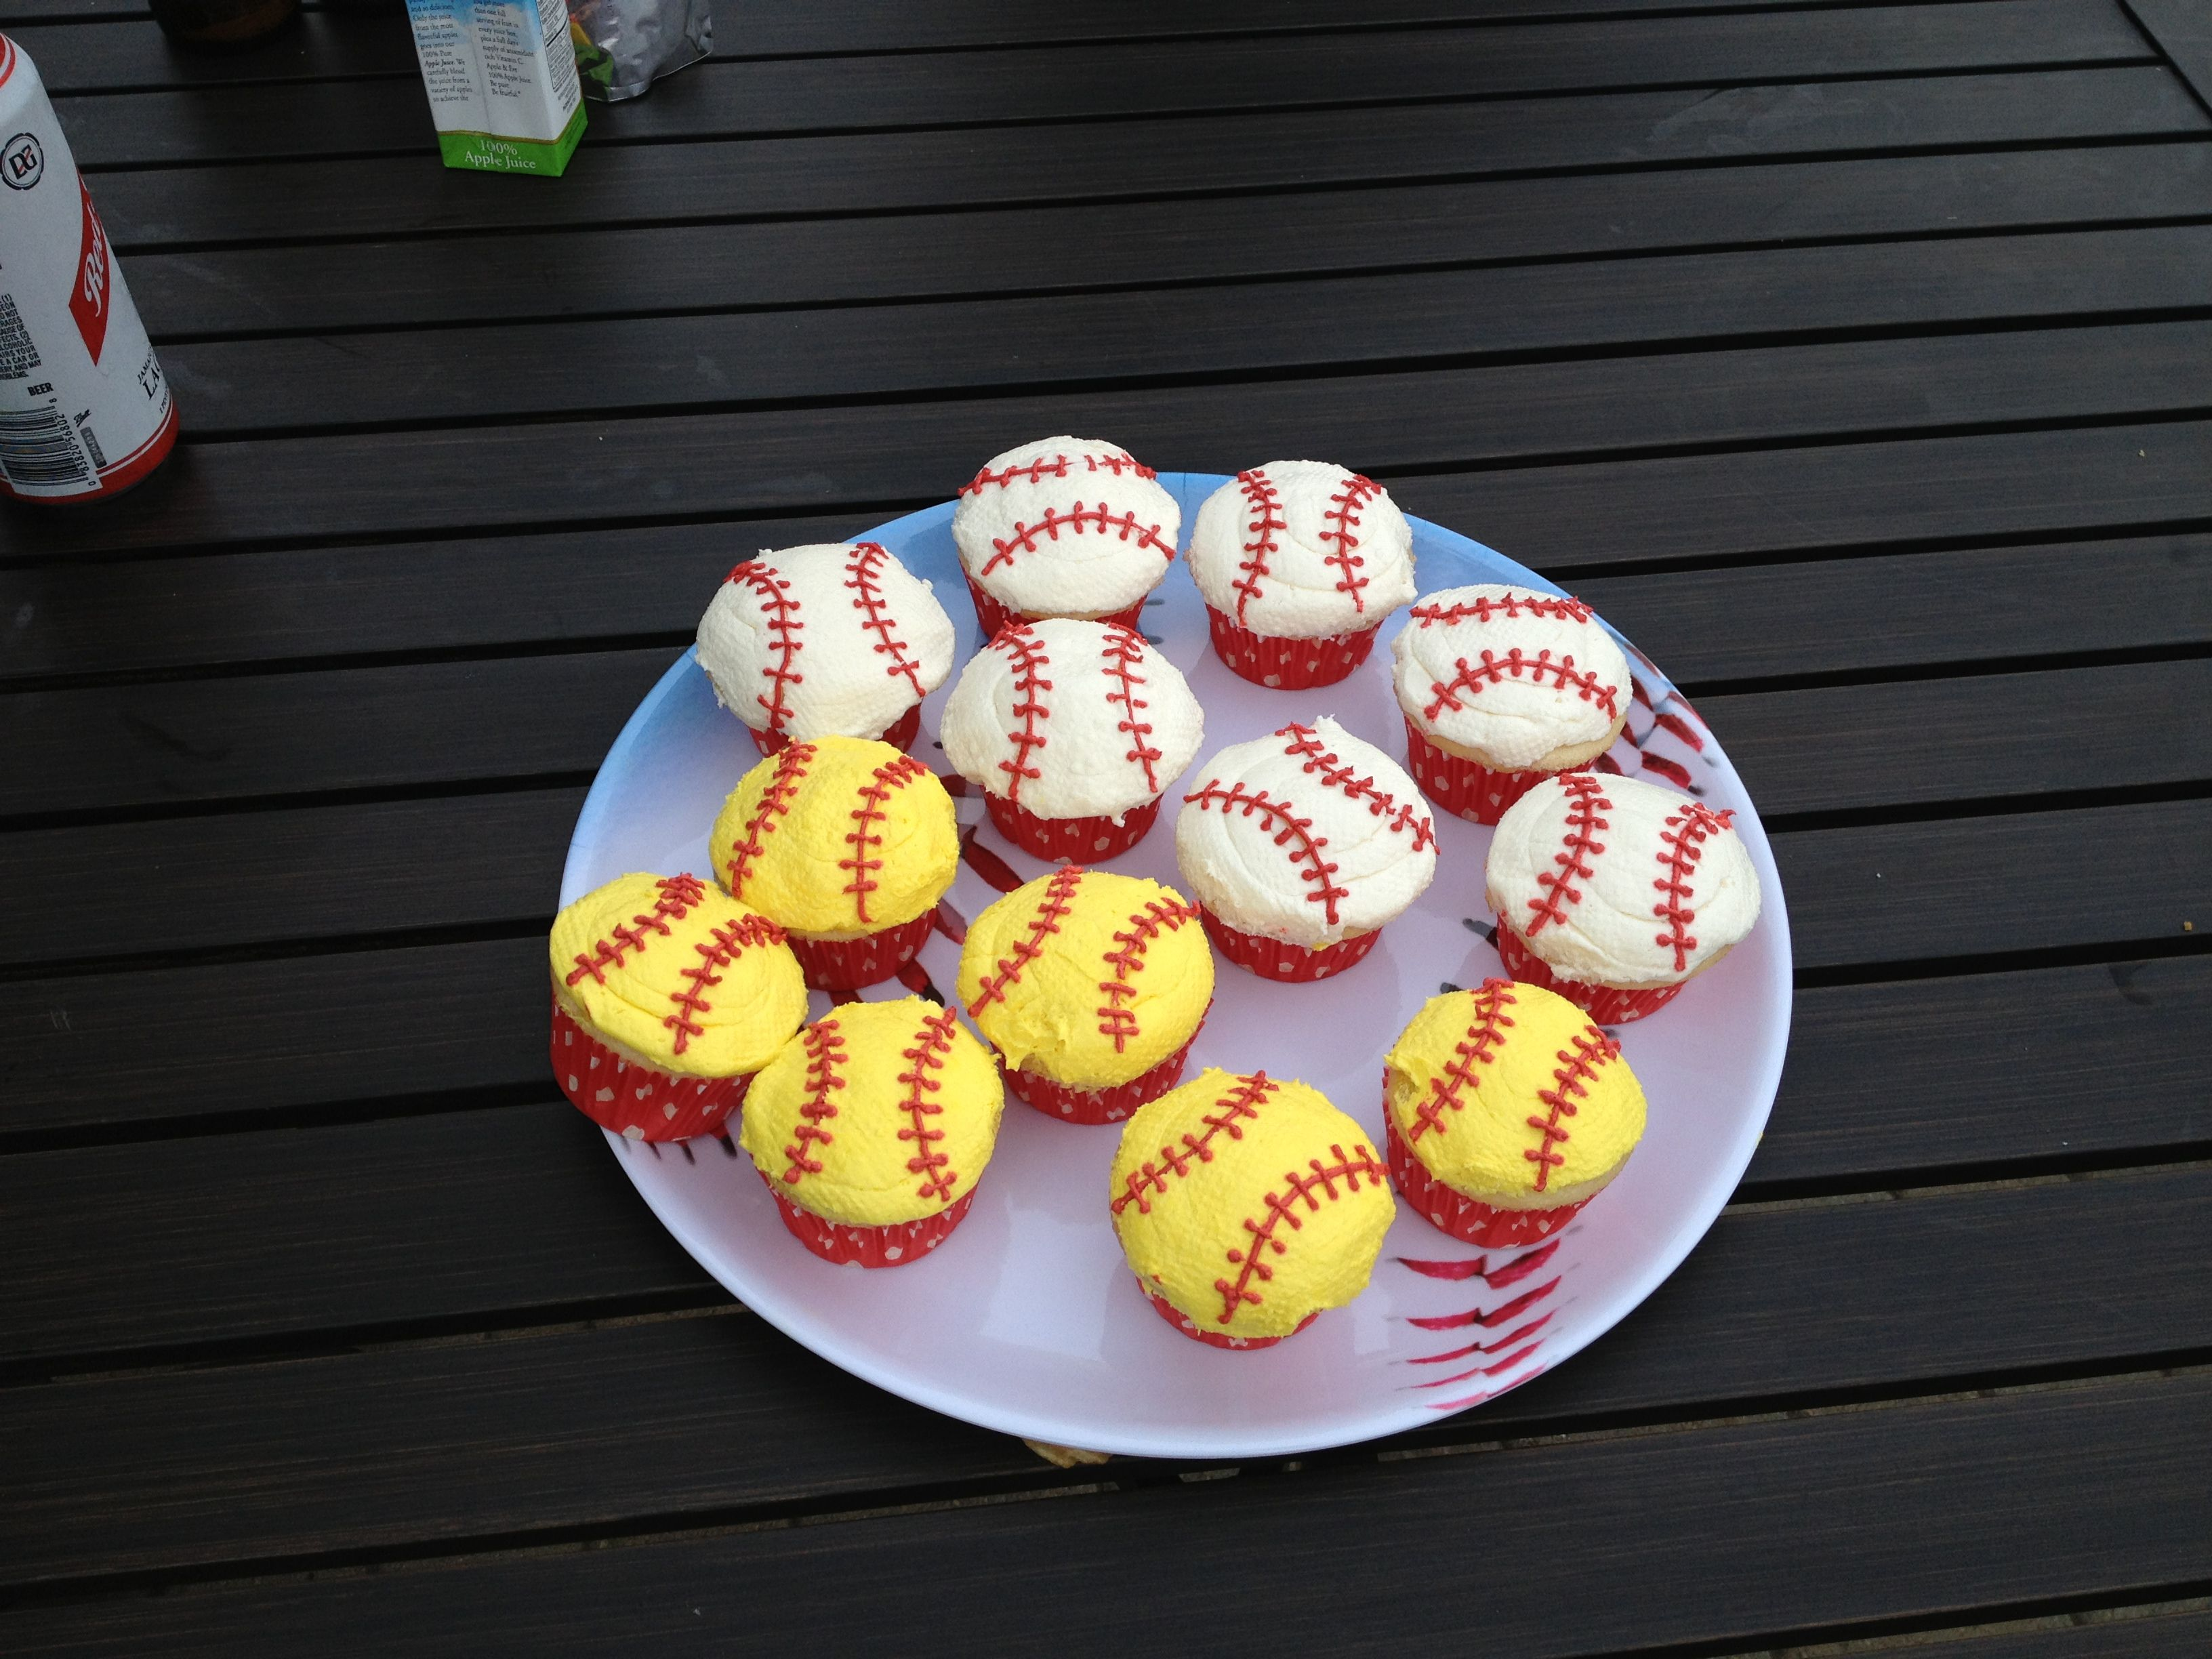 Beautifully yummy cupcakes made by my friend Cara for our softball